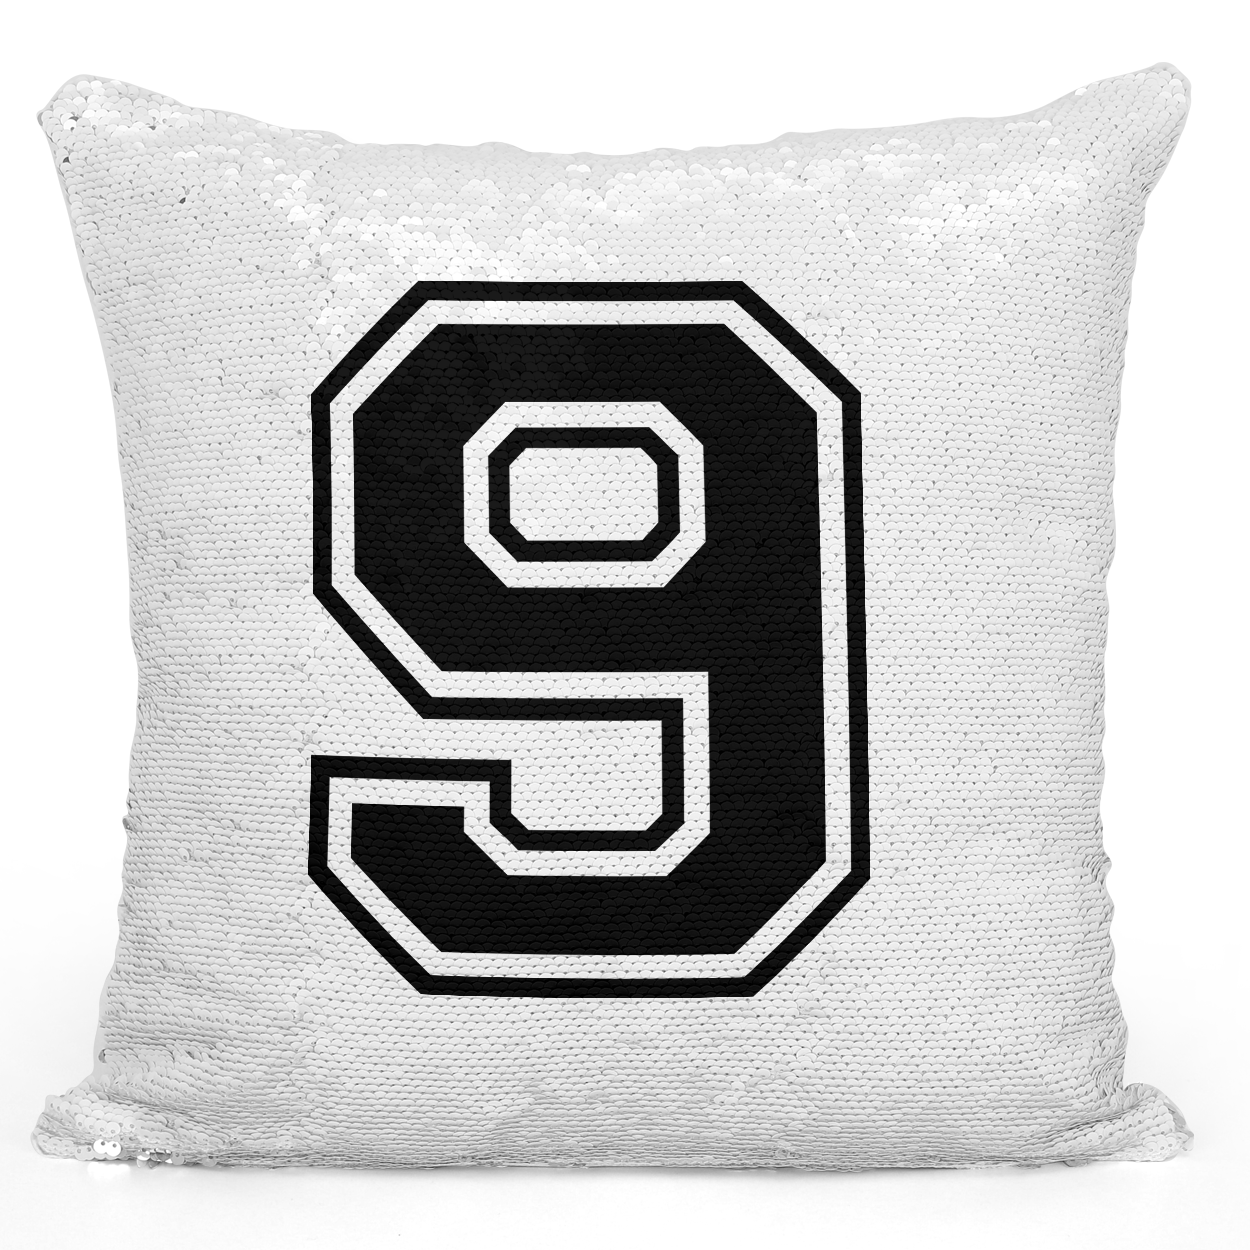 Sequin Pillow Magic Mermaid Throw Pillow Sports Team Player Number 9 In Black - Premium 100% Polyester 16 x 16 inch Square Modern Livingroom Decorative Pillow Loud Universe